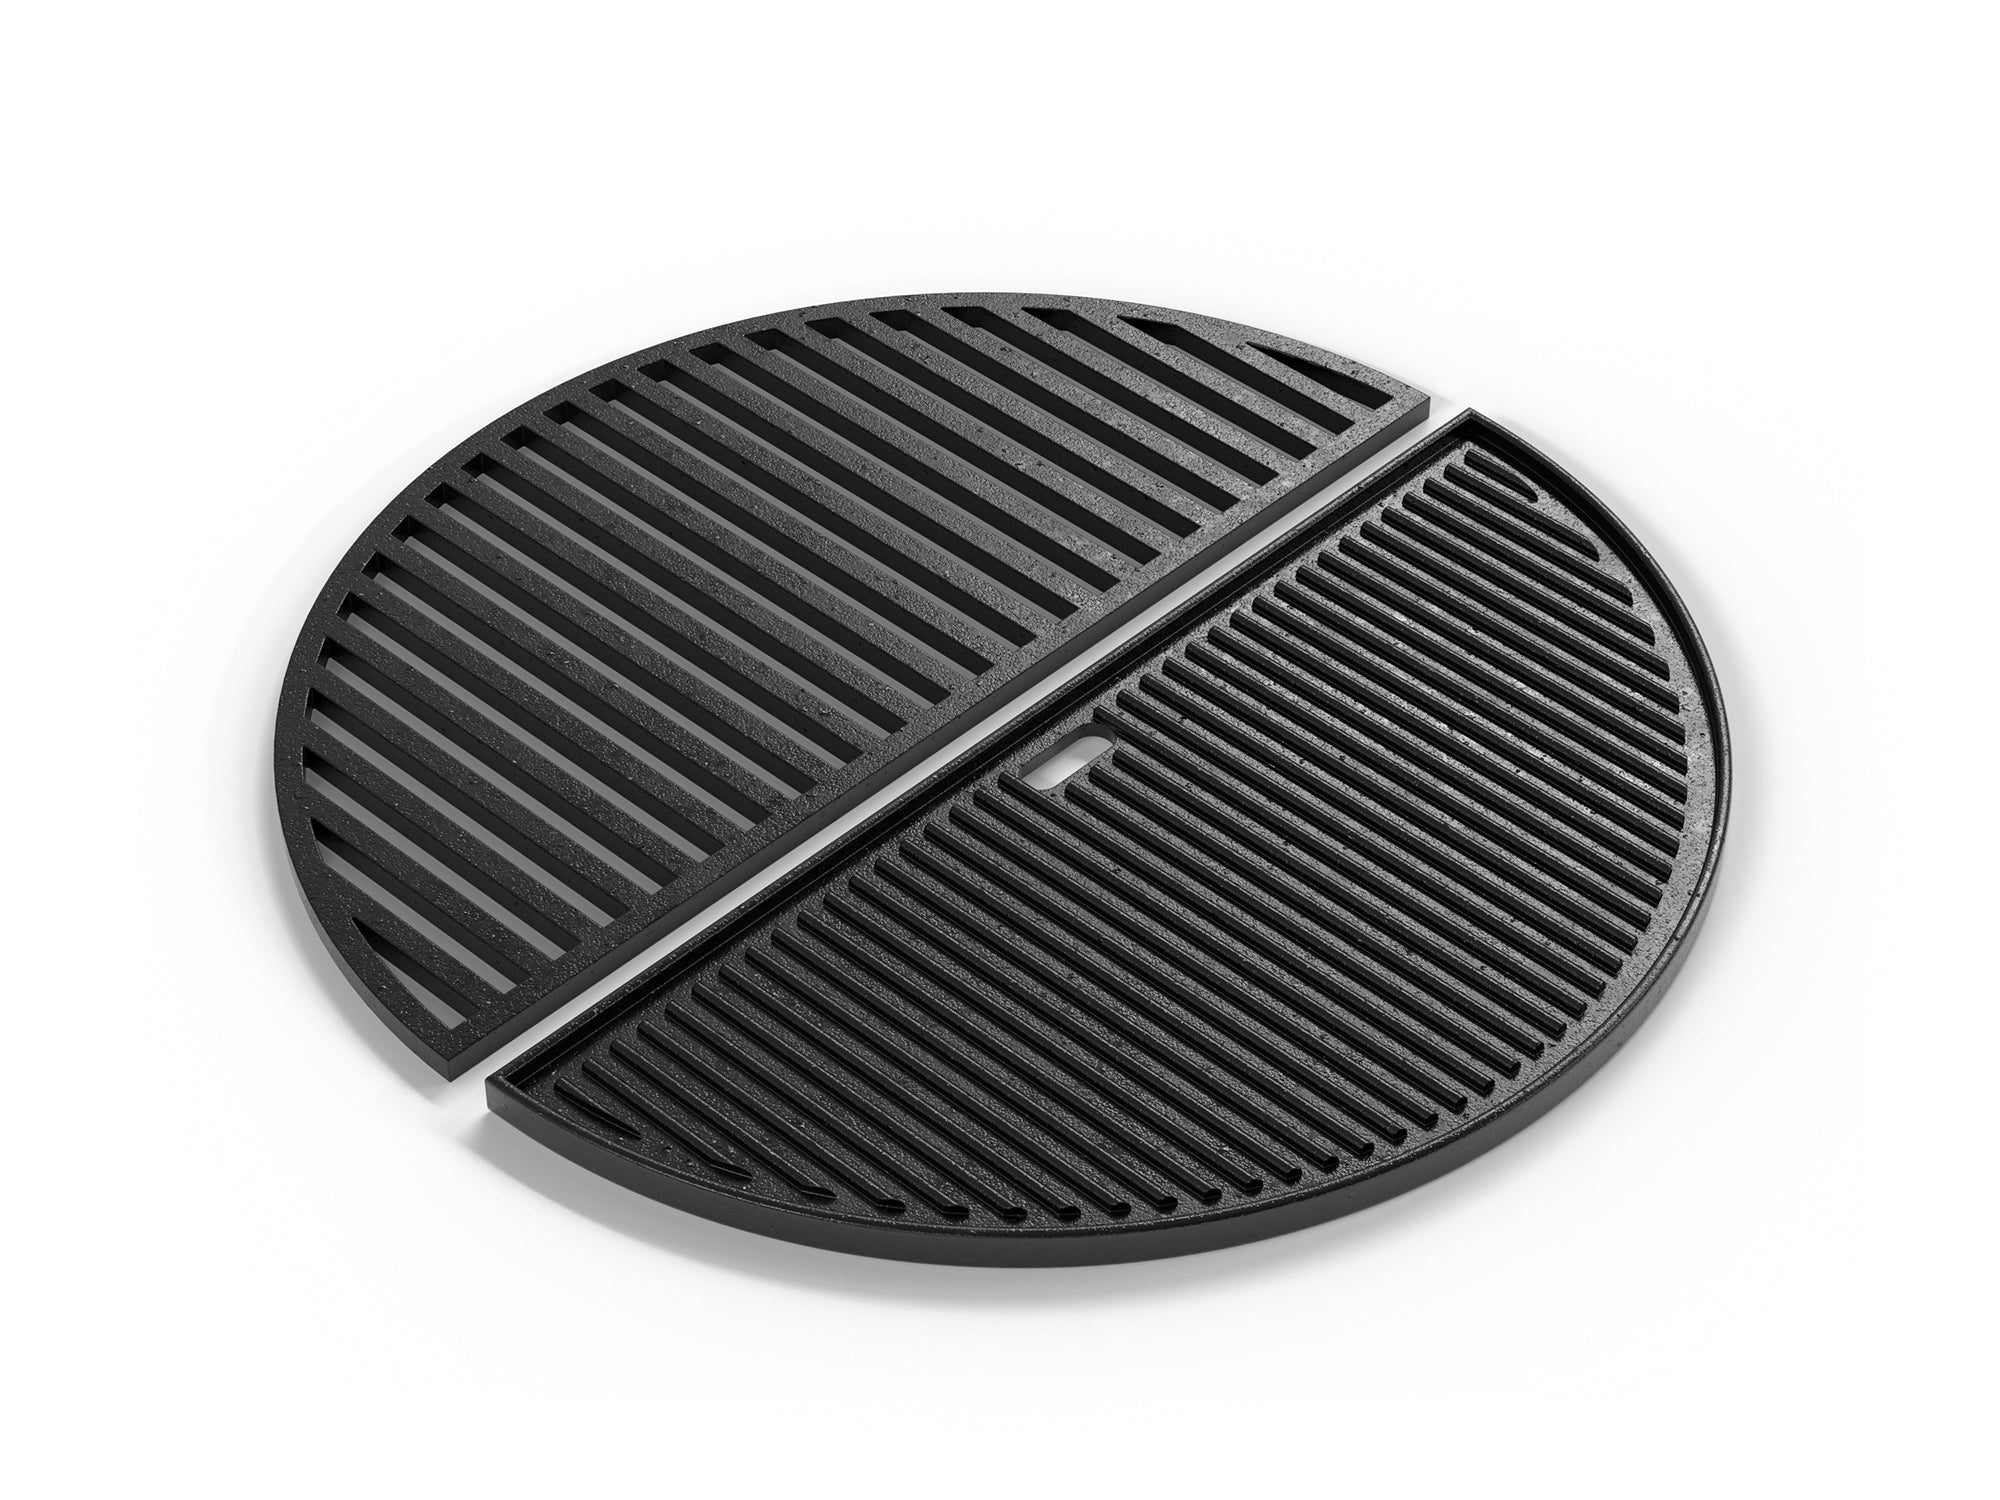 Outdoor Kitchen 19 in. Cast Iron Griddle